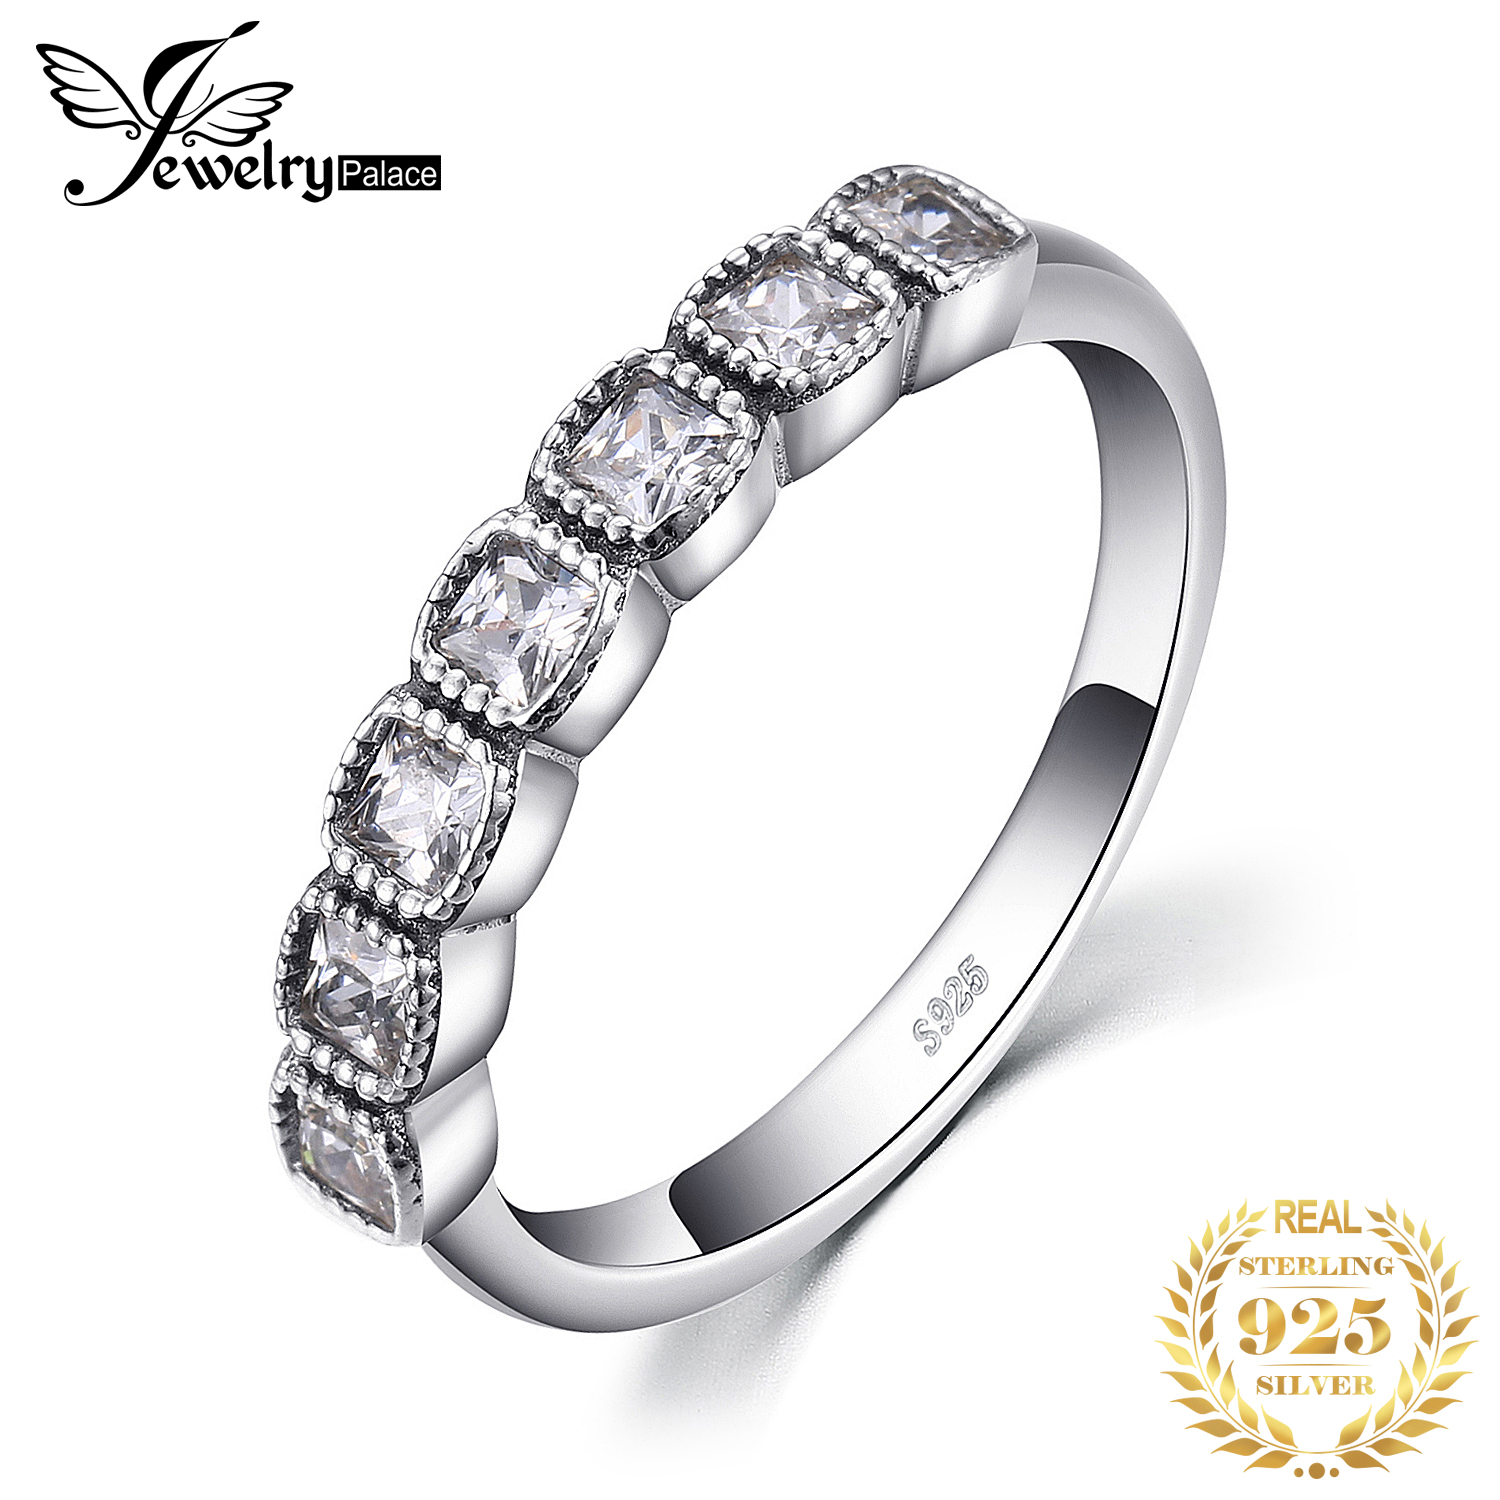 Jewelrypalace 925 Sterling Silver Brilliant Cut Princess Ring Gift Rings For Women/Grils Wedding Jewelry Rings New Design 2018